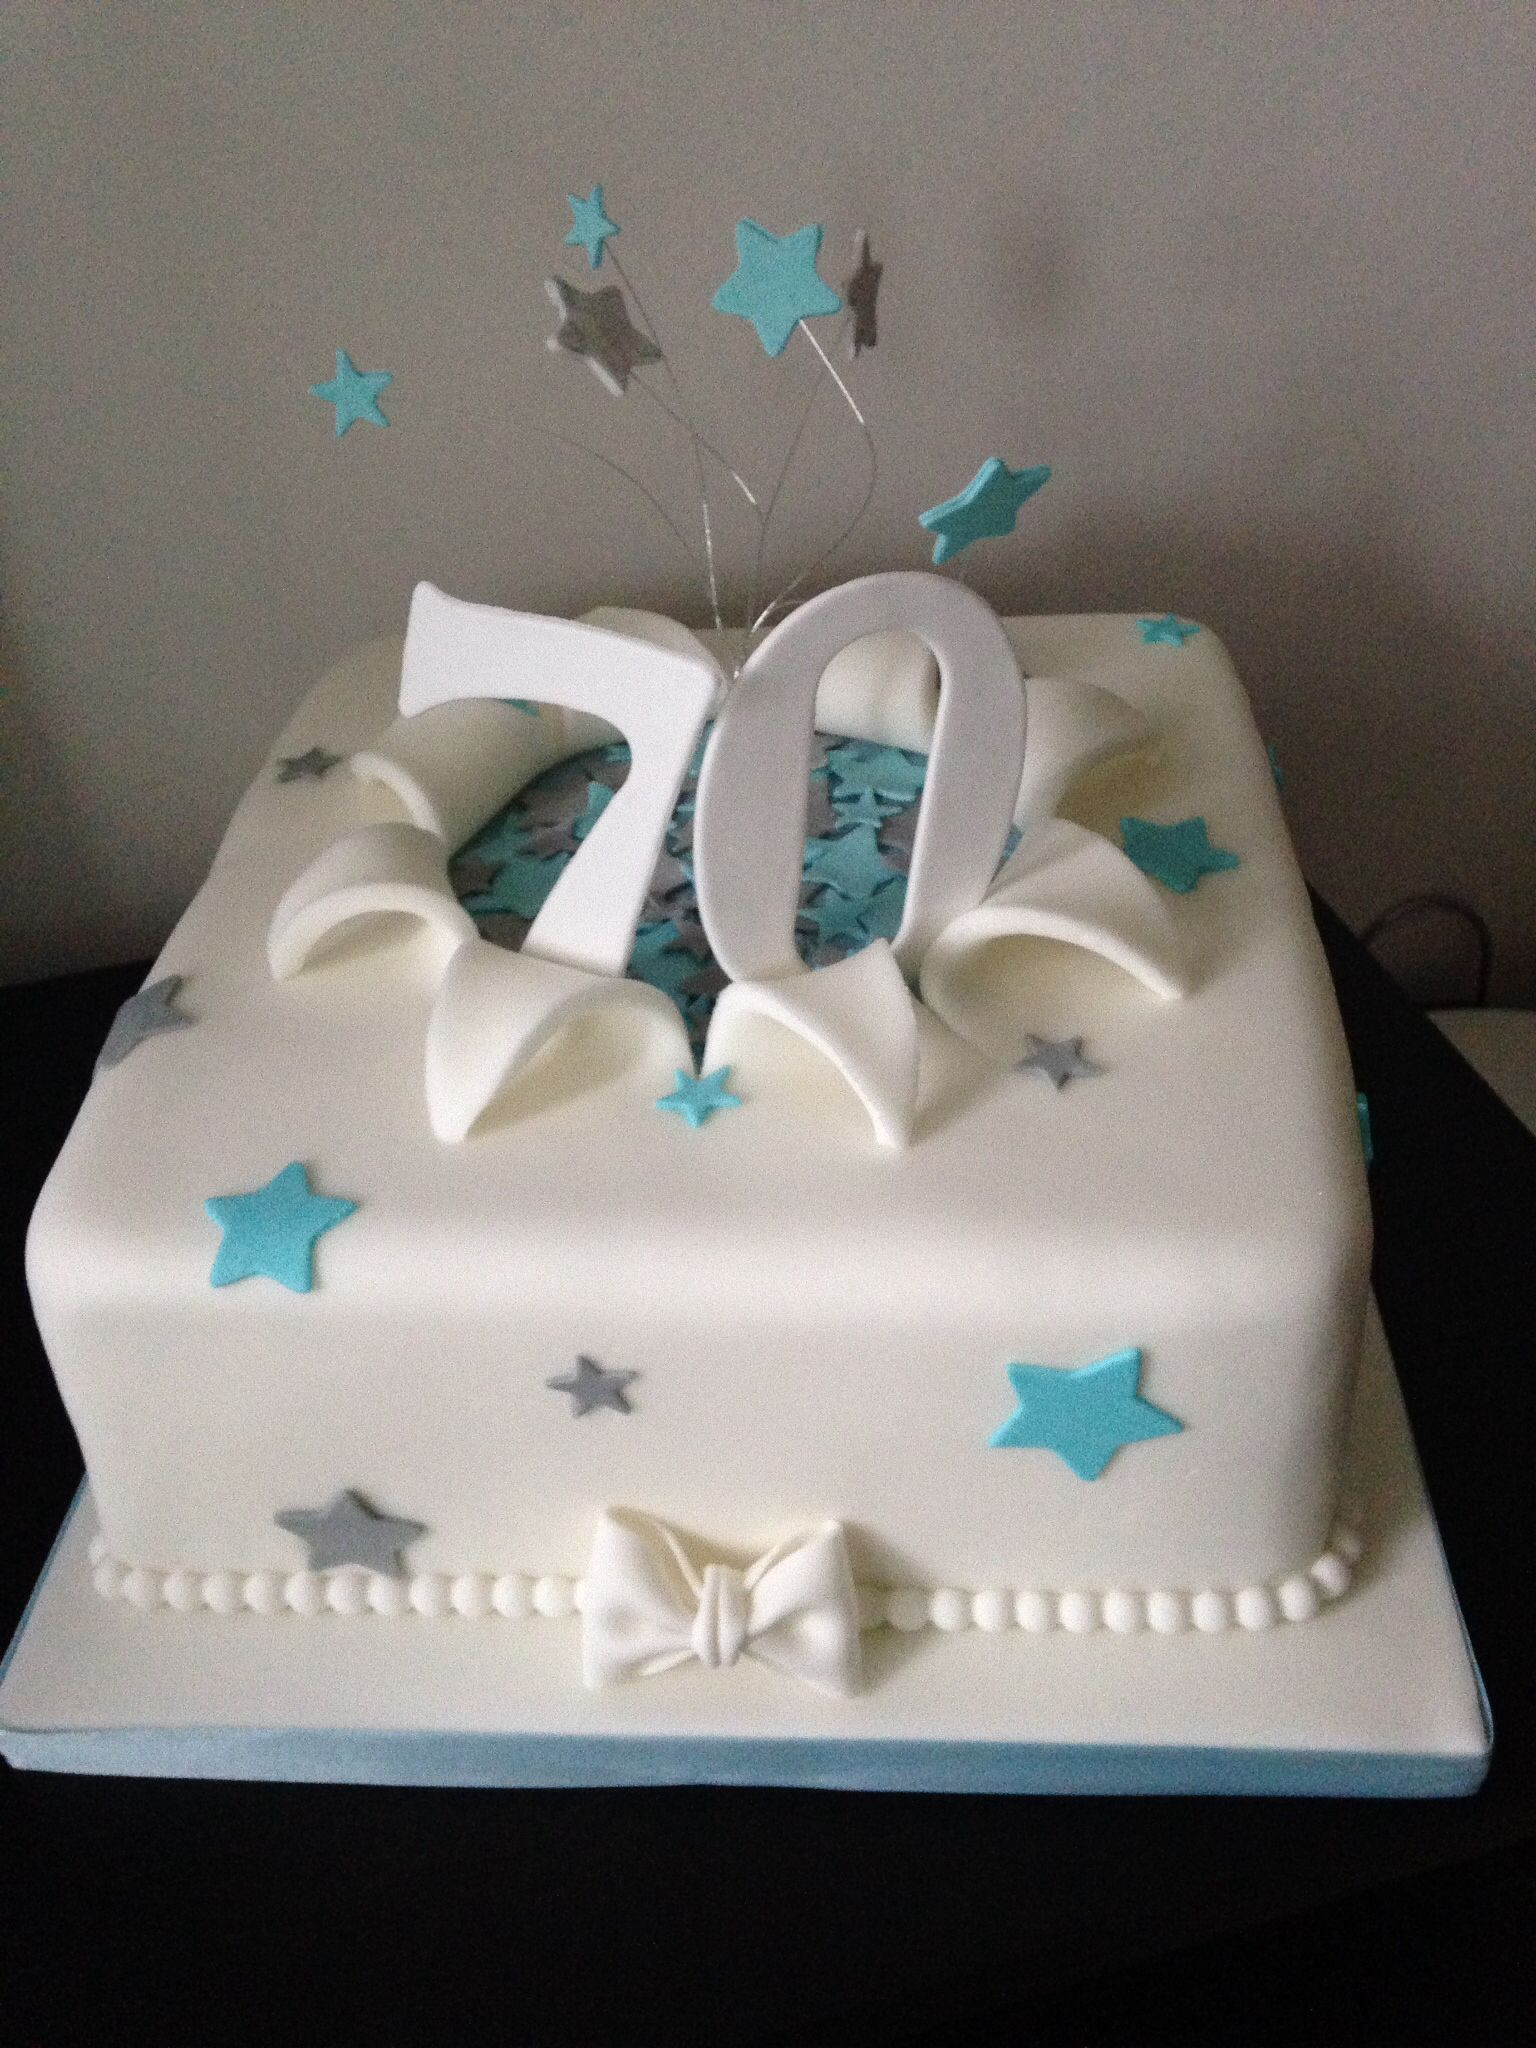 Best ideas about 70th Birthday Cake Ideas . Save or Pin 70th birthday cake in turquoise and silver Cakes Now.